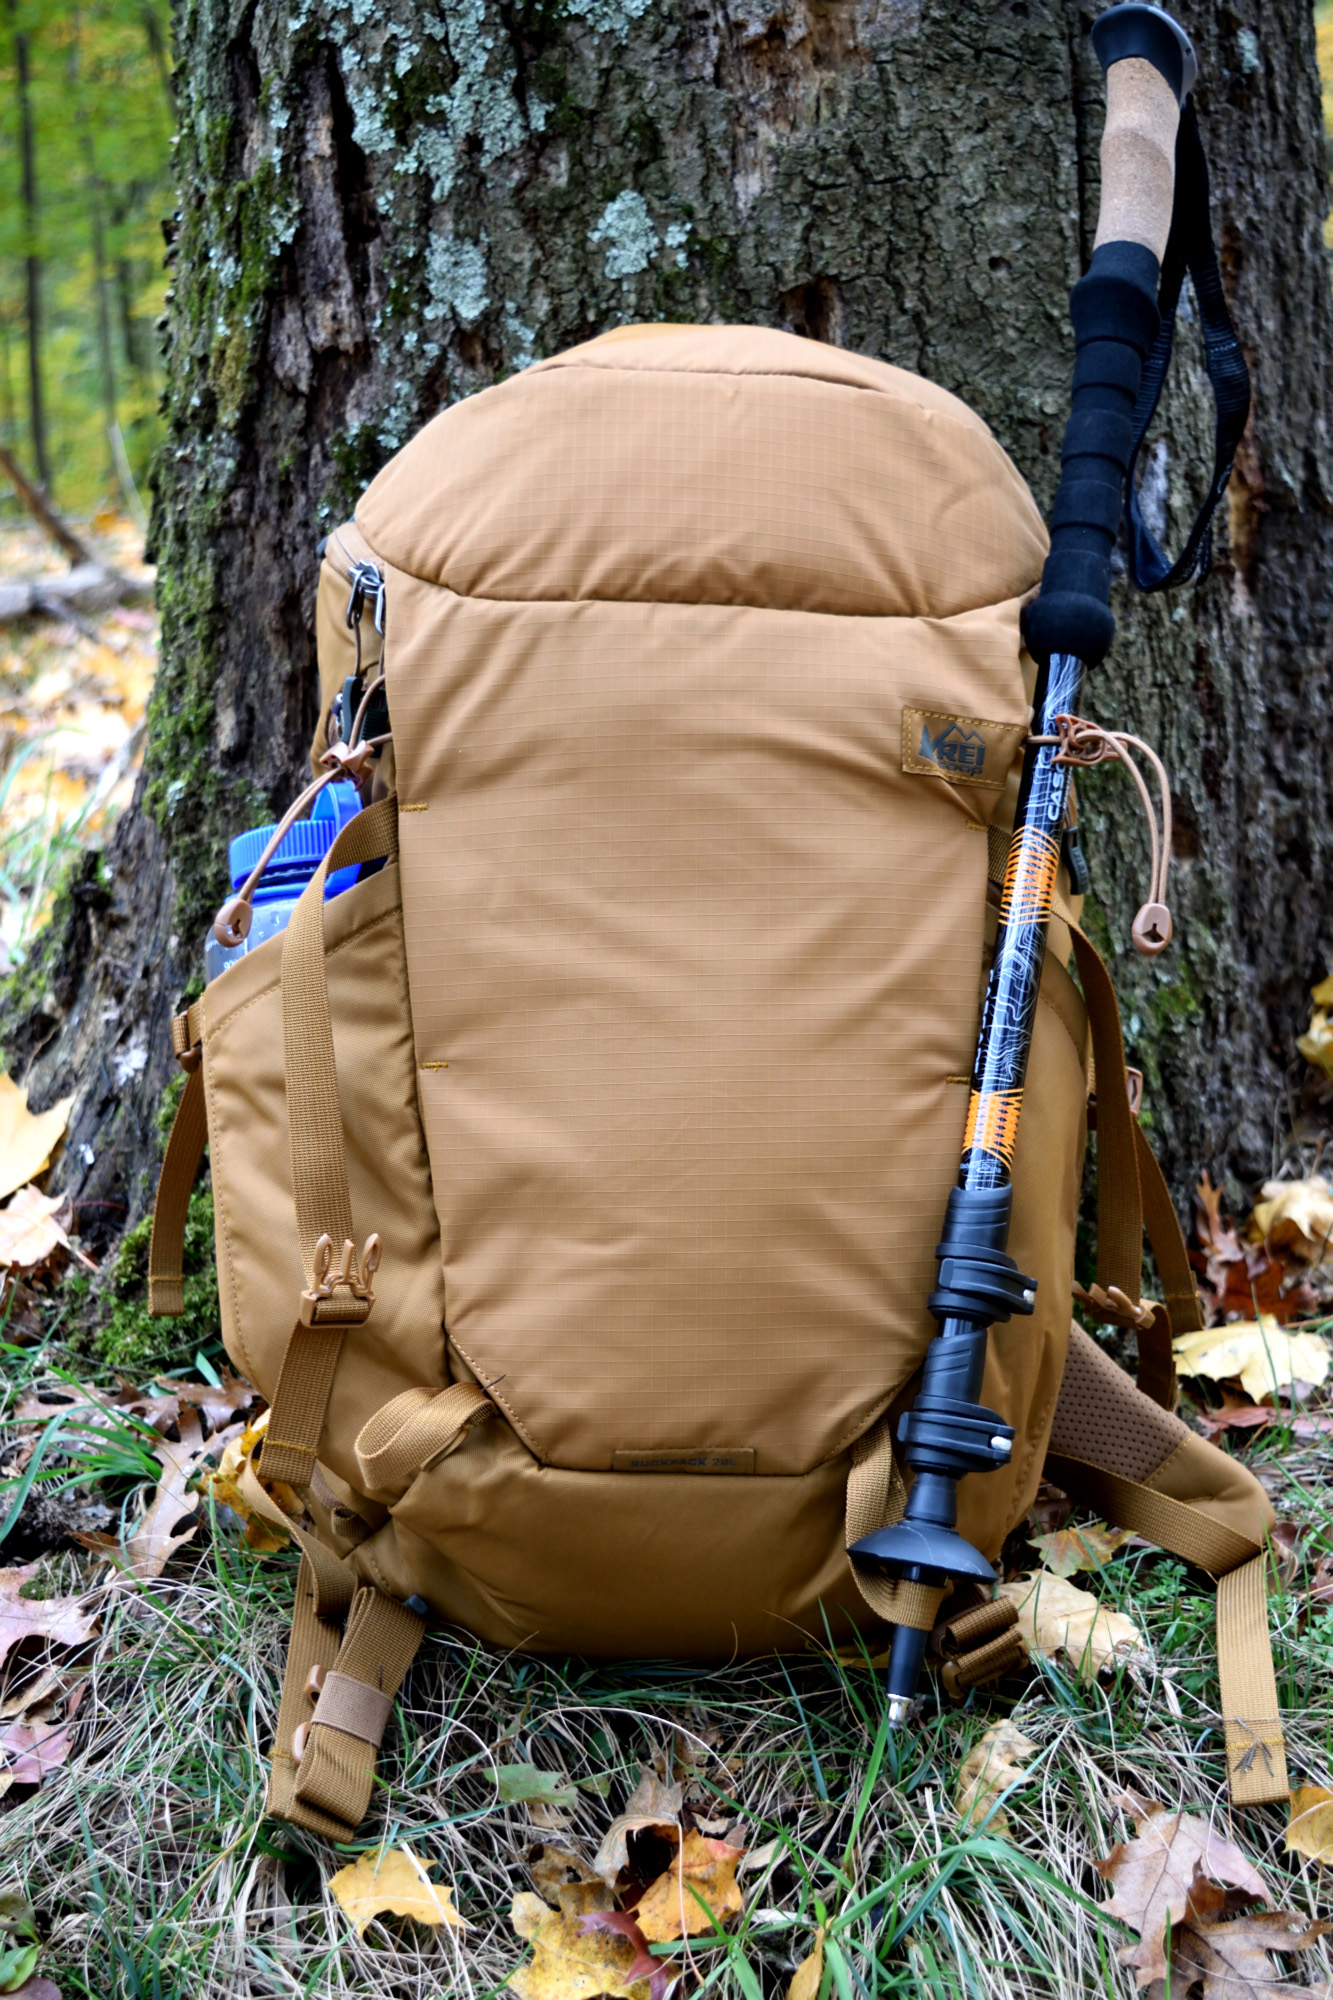 202911a46828 REI Rucksack 28 Pack Review « Backpackish